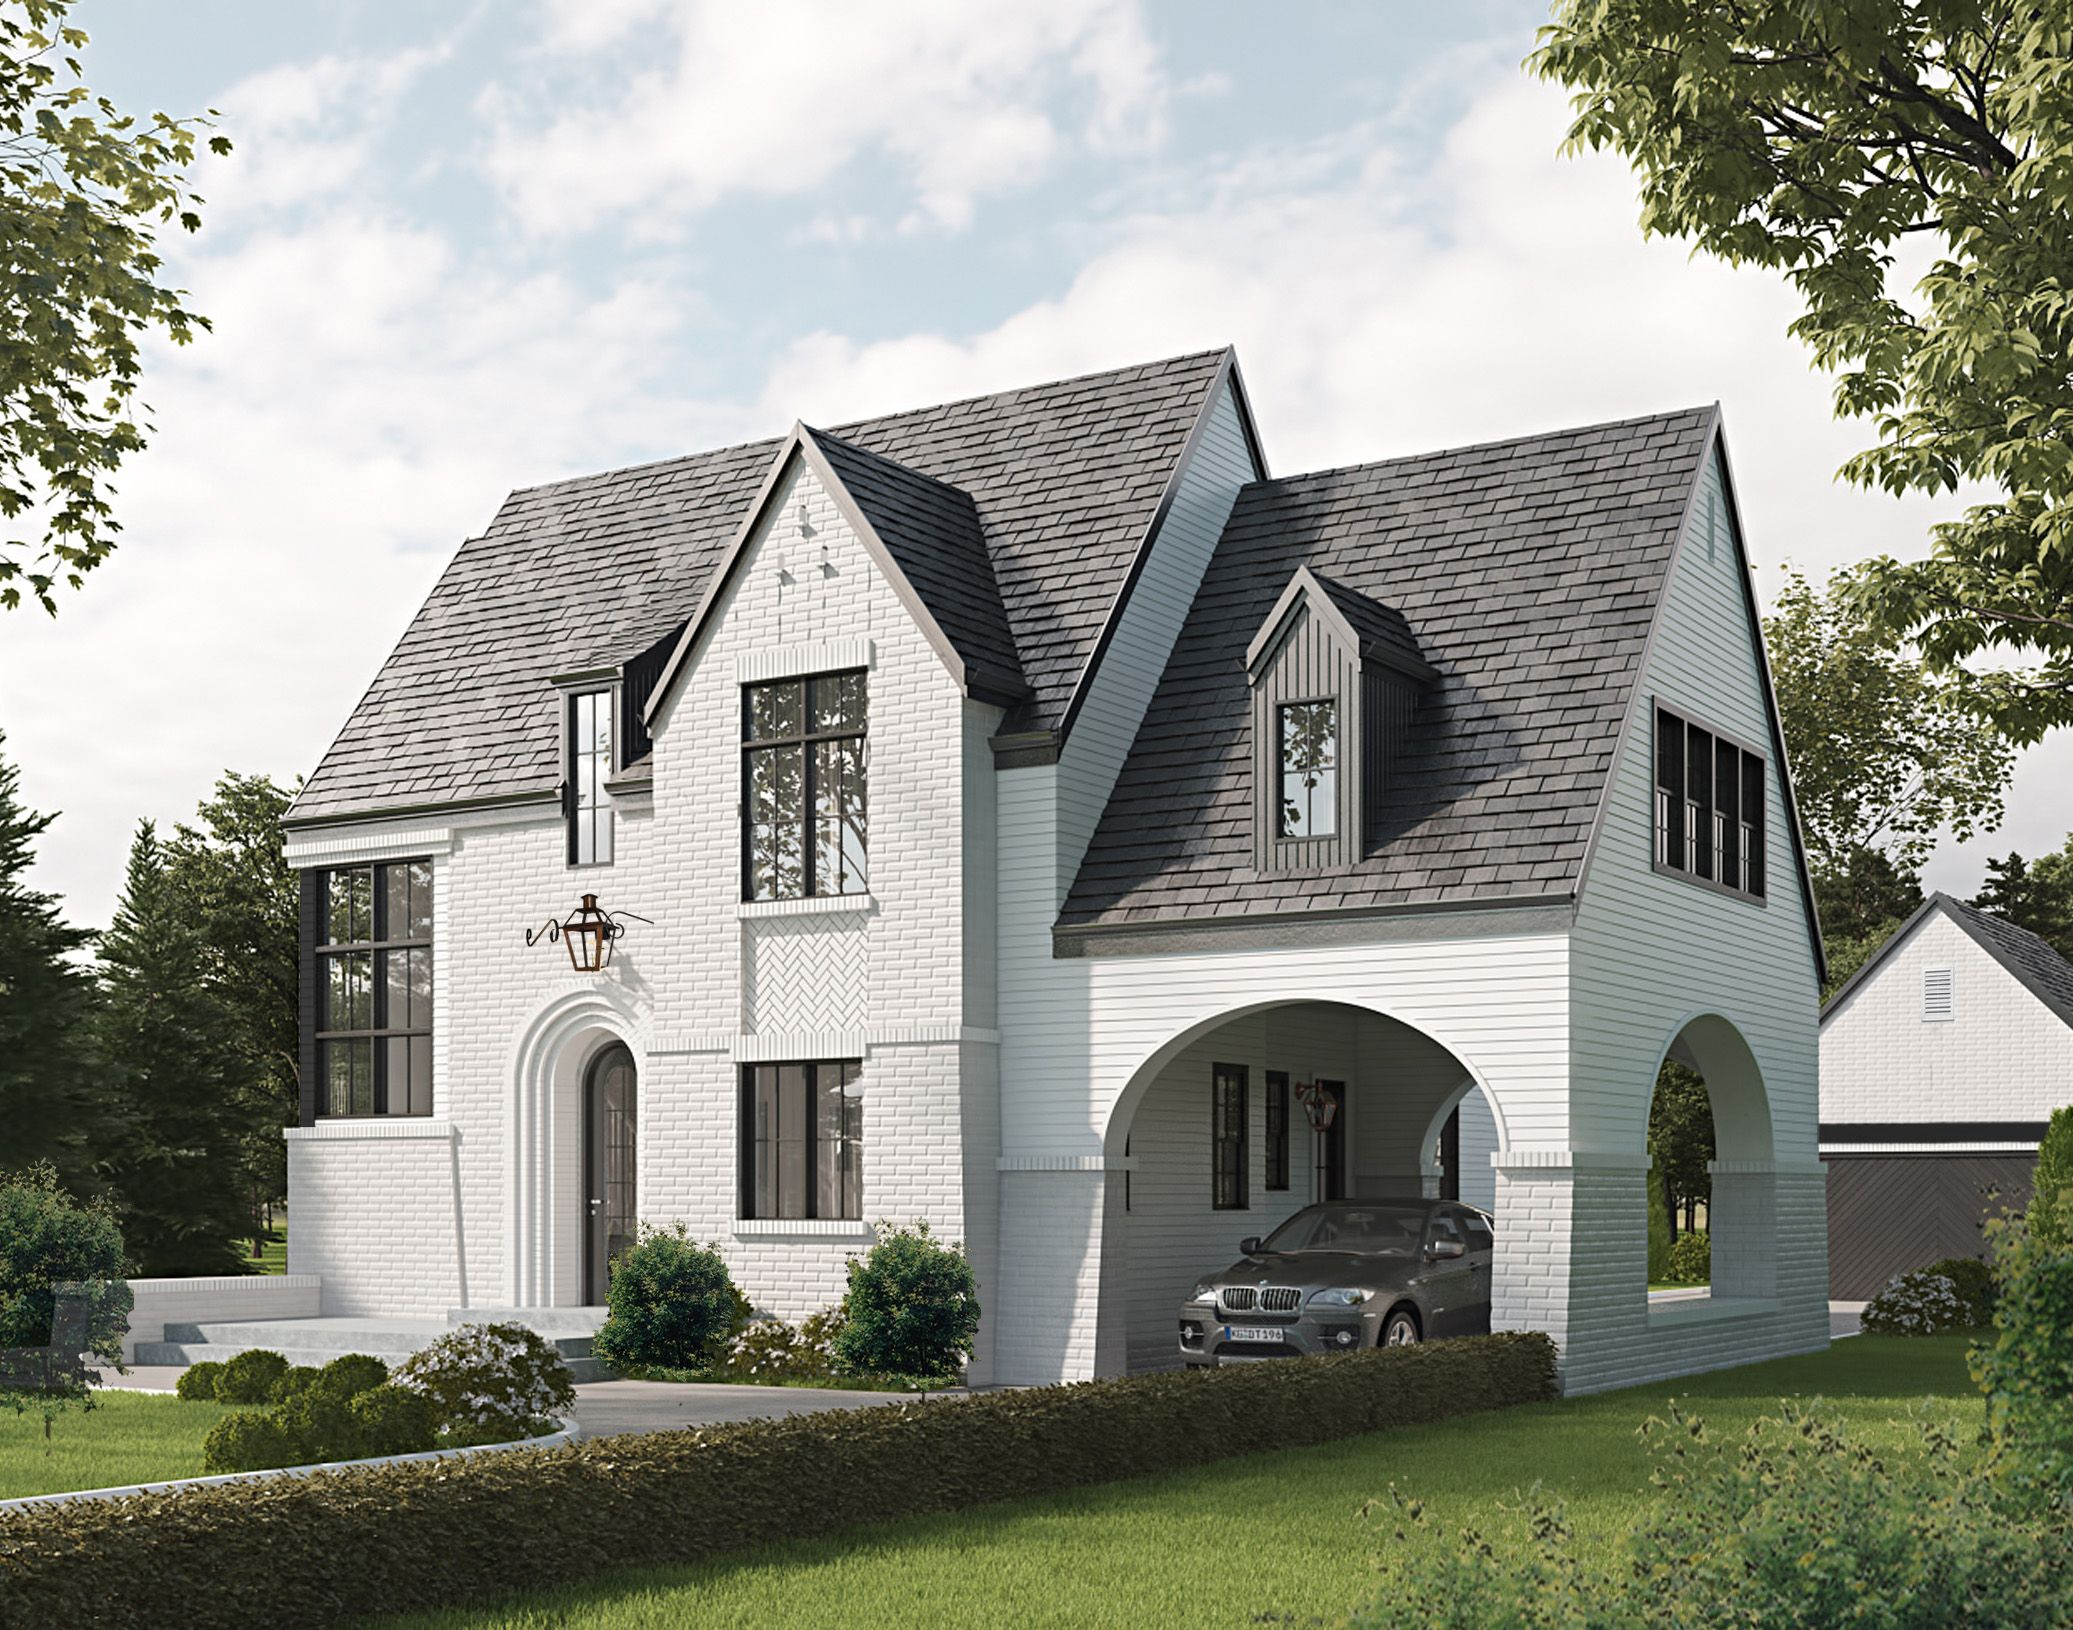 Rendering for new home in cramers pond 36 home community near charlotte country club plaza midwood charlotte nc to be built by luxury home builder